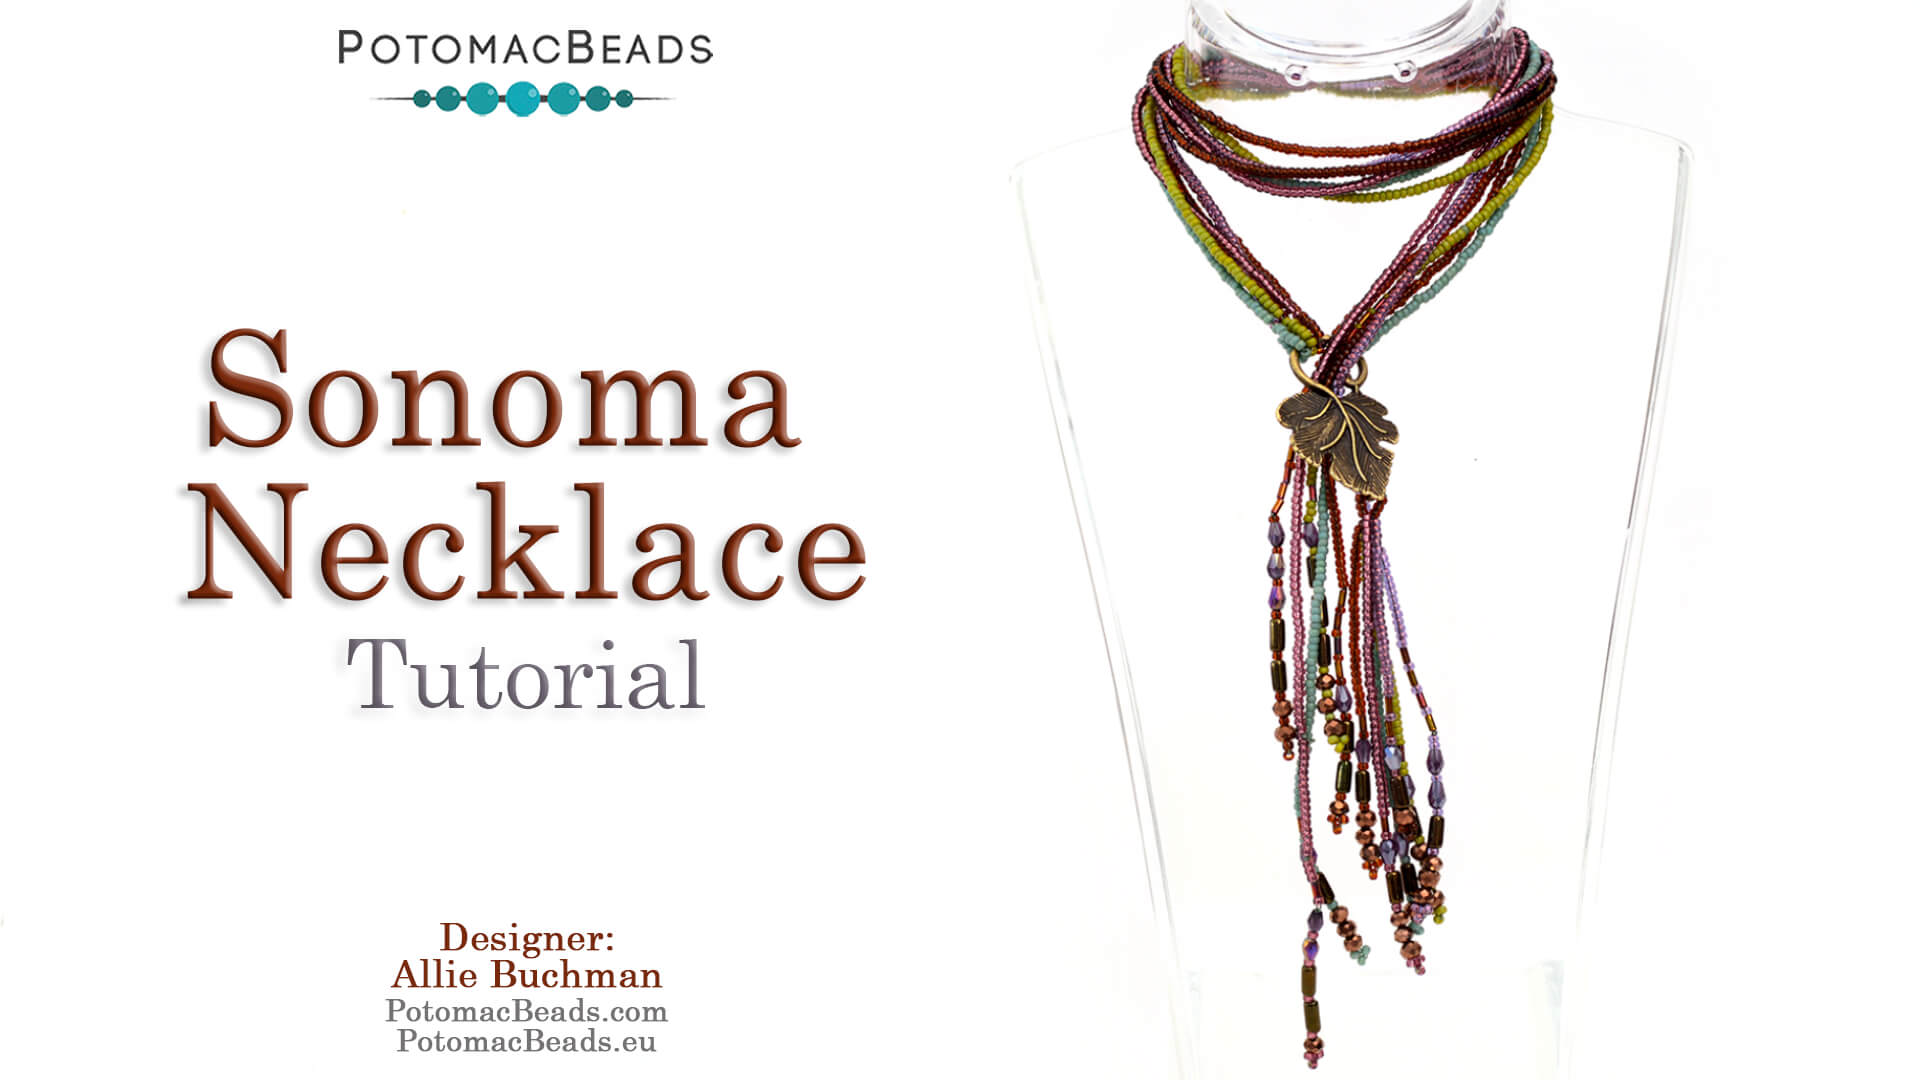 How to Bead / Videos Sorted by Beads / Tubelet Bead Videos / Sonoma Necklace Tutorial